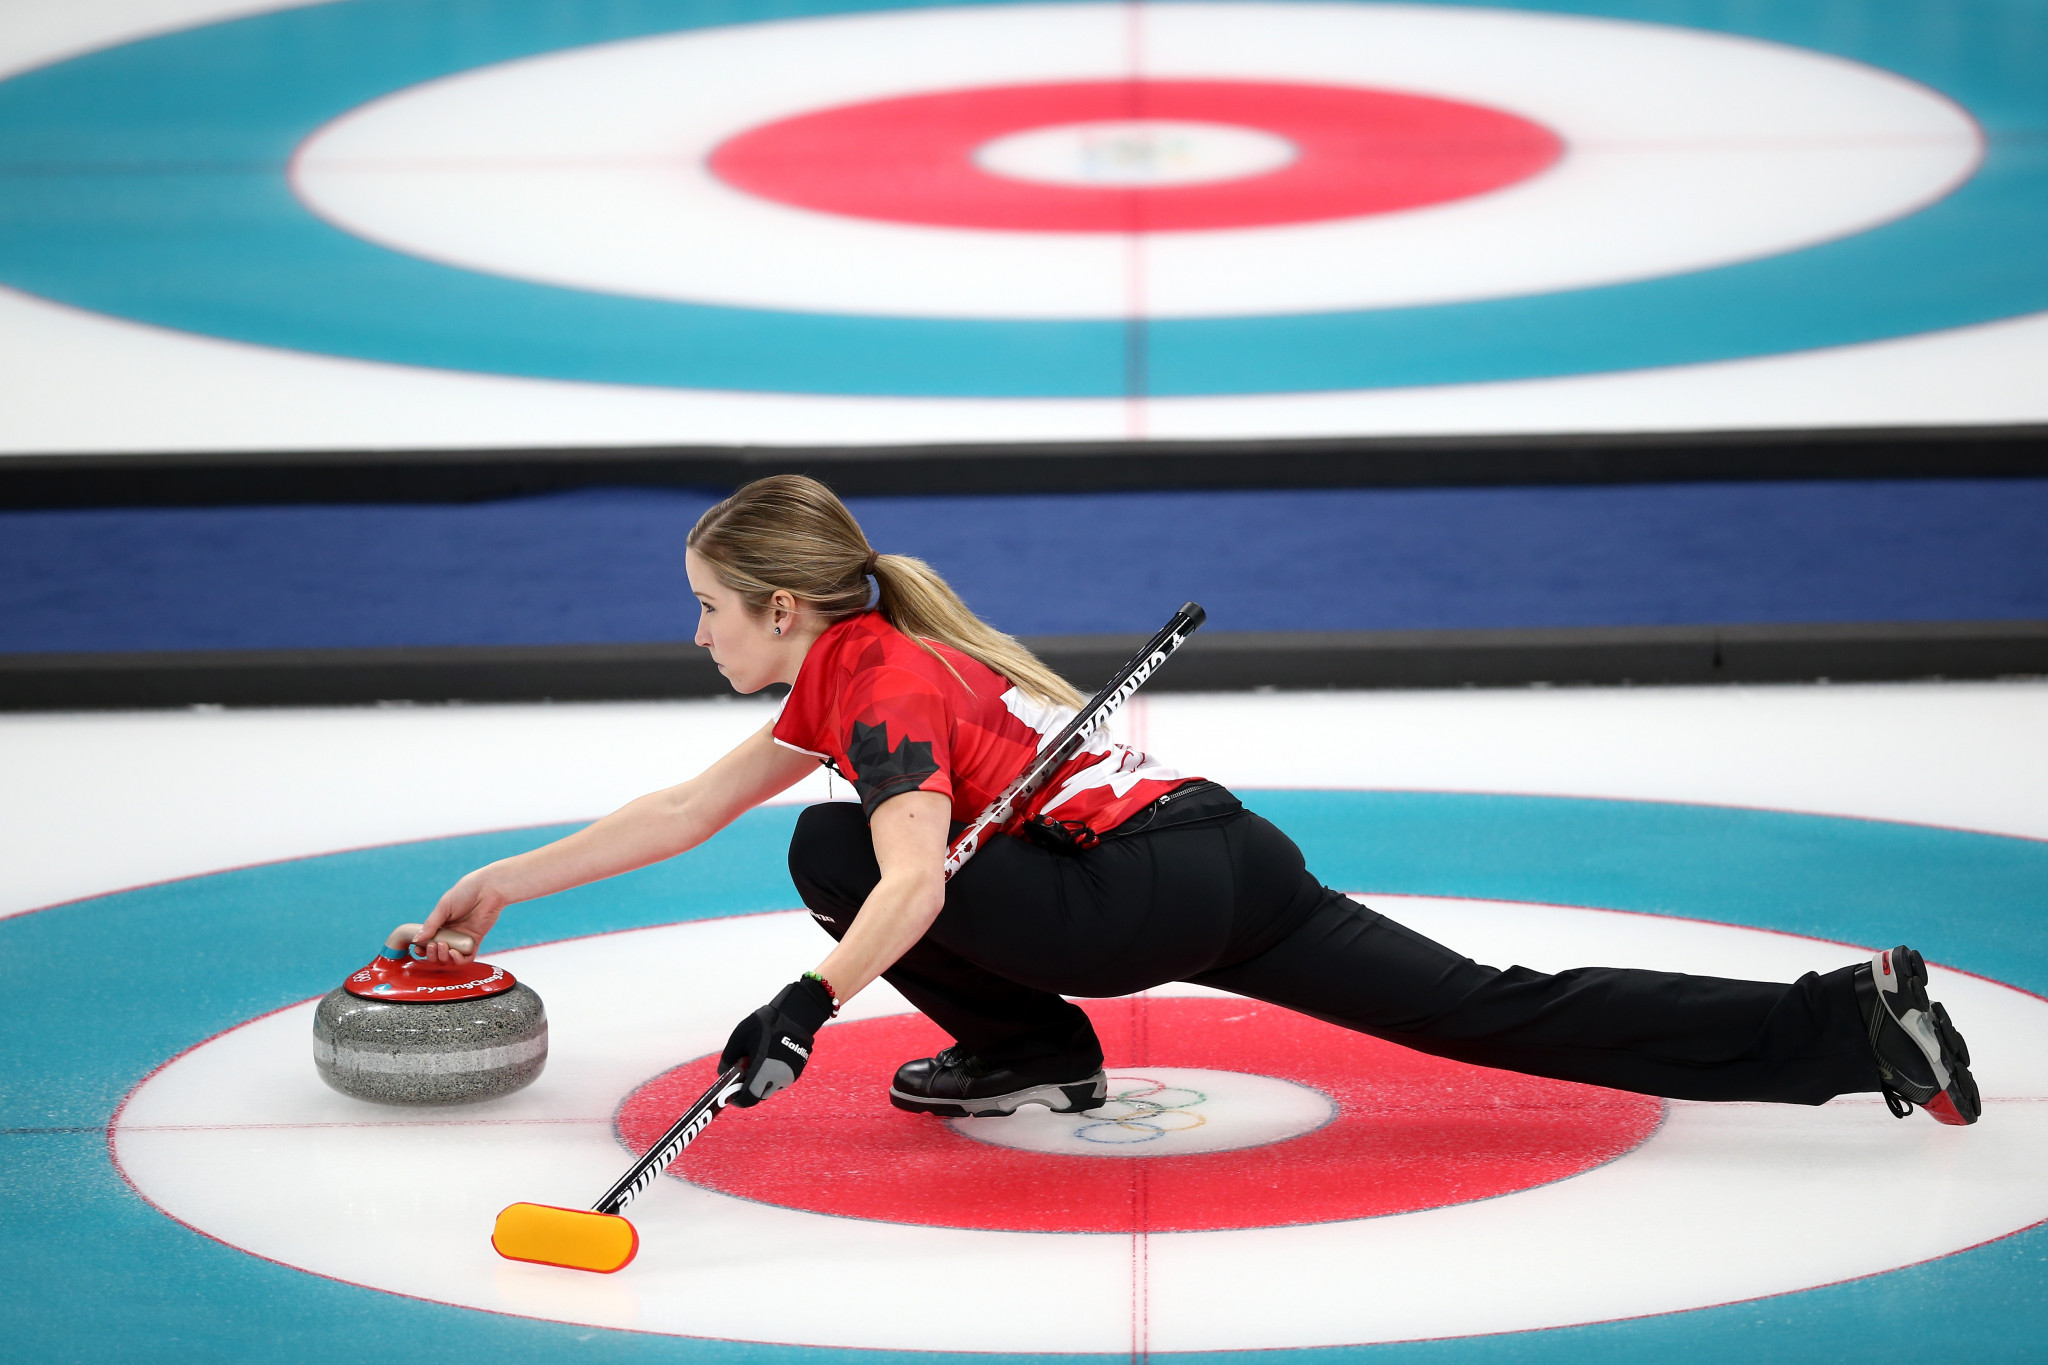 Canada thrash Switzerland to clinch first Olympic mixed doubles curling gold medal at Pyeongchang 2018